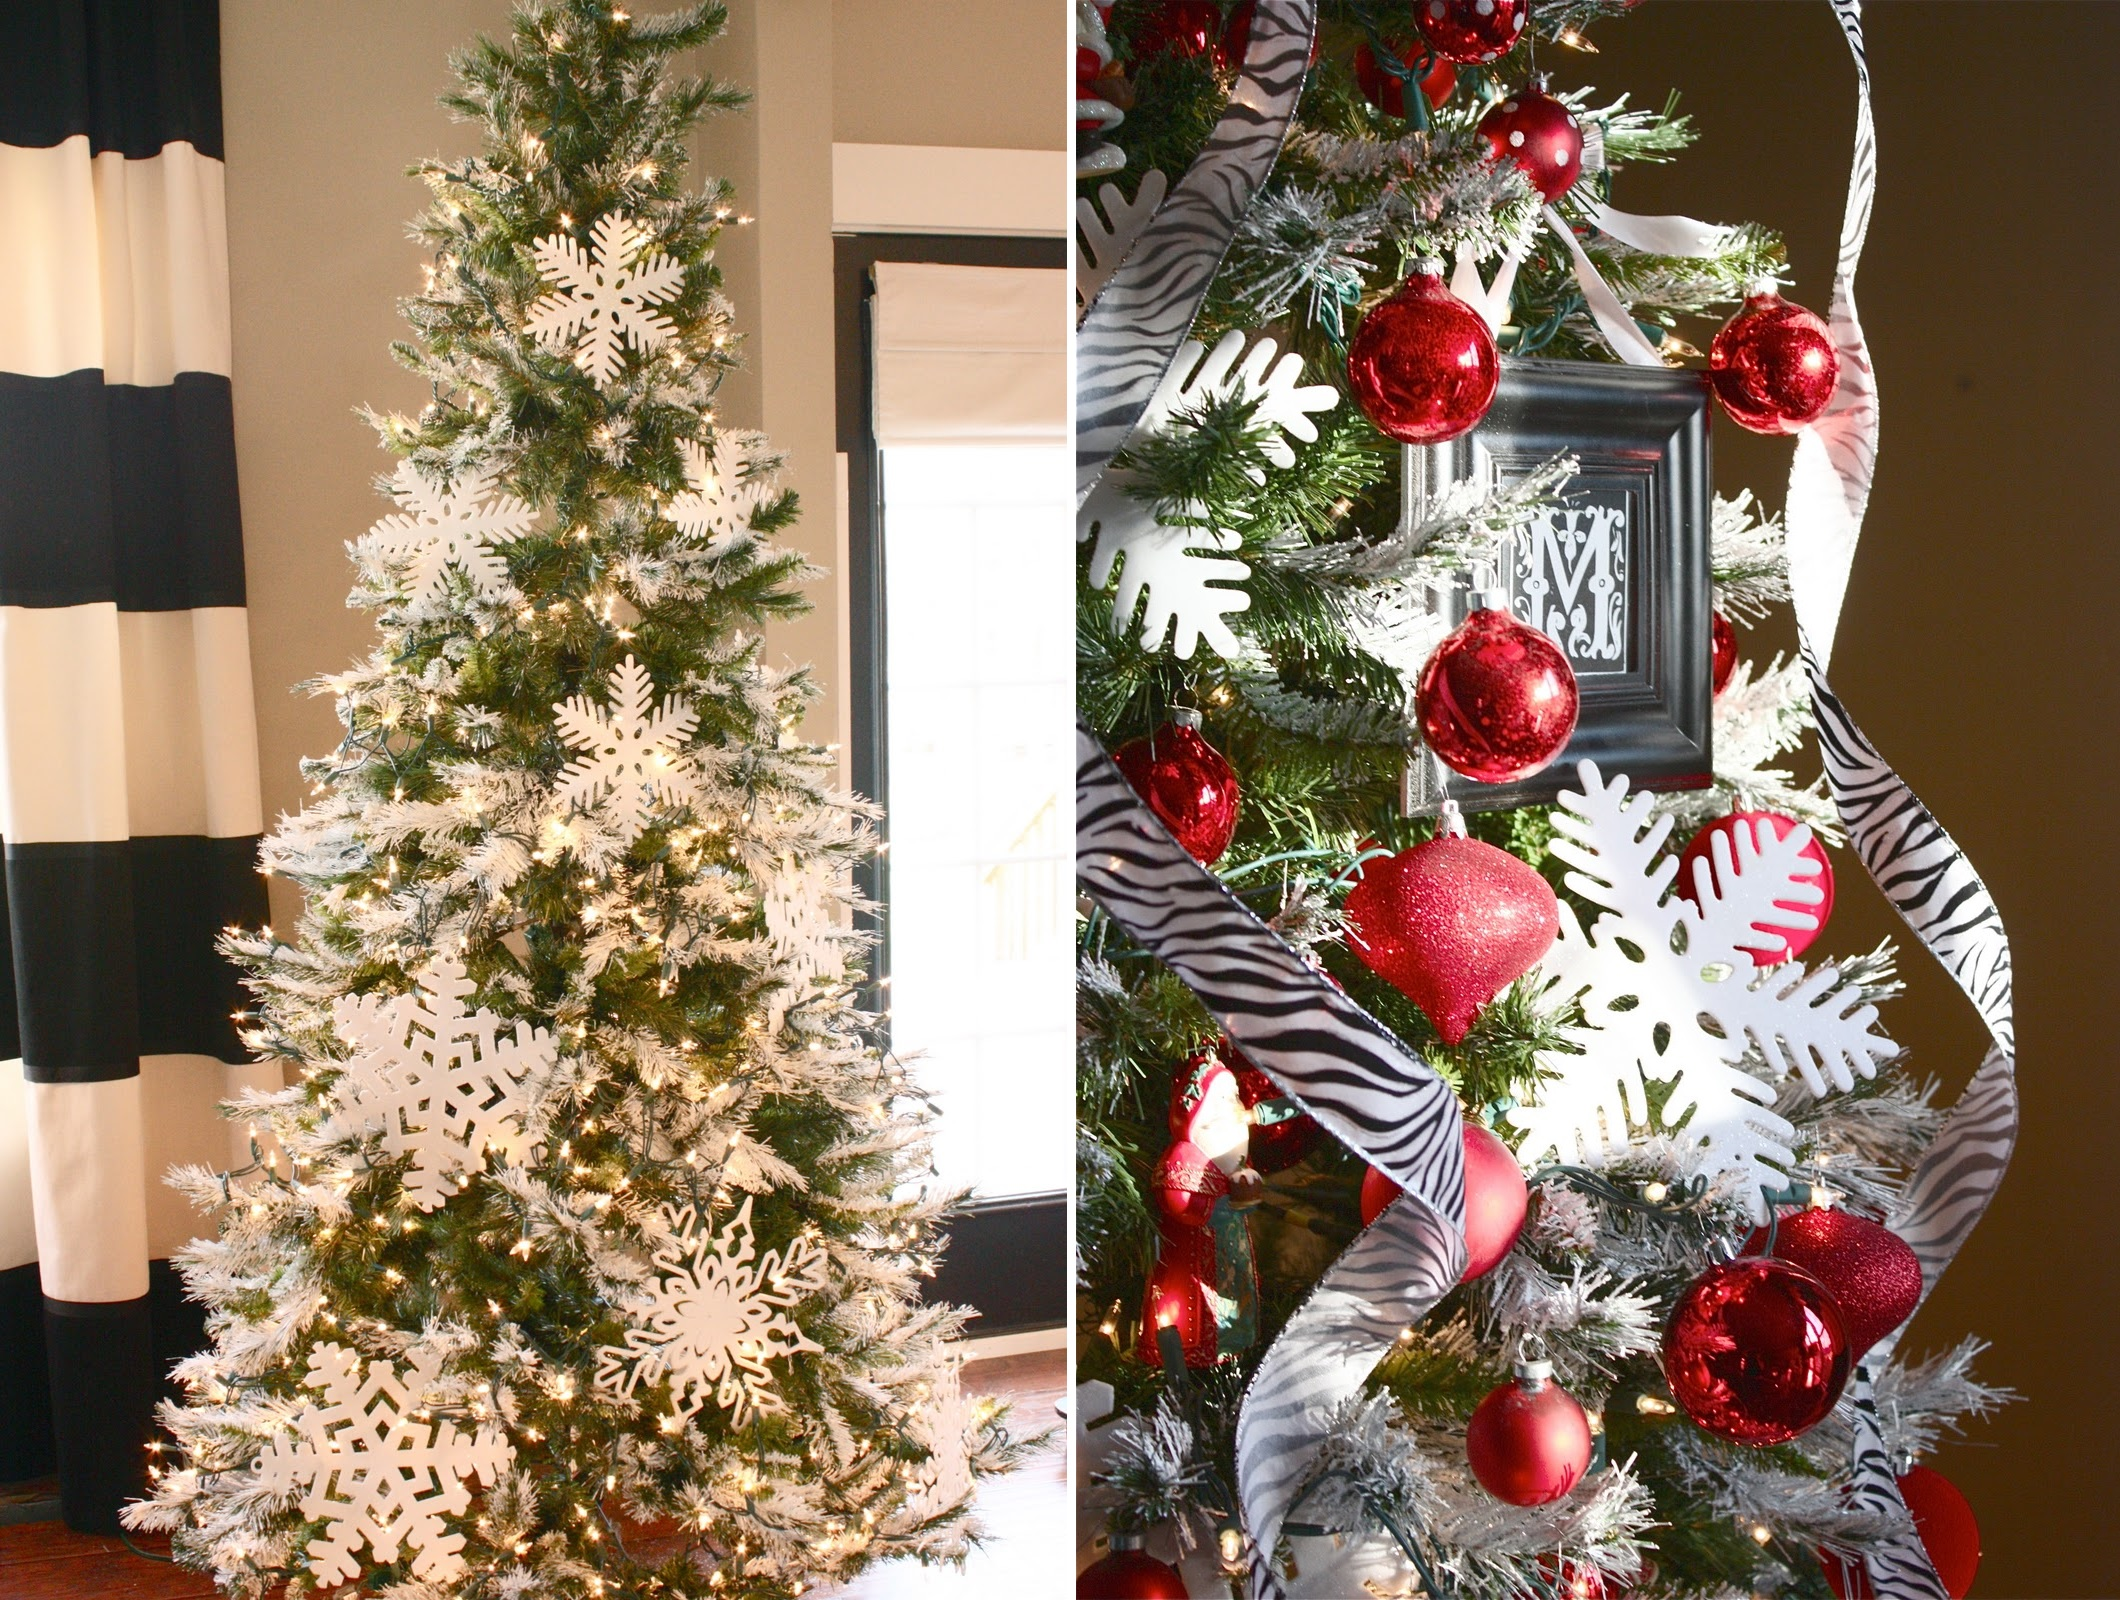 All The Wonderful Christmas Tree Ideas You Need For A Wonderful Holiday images 17